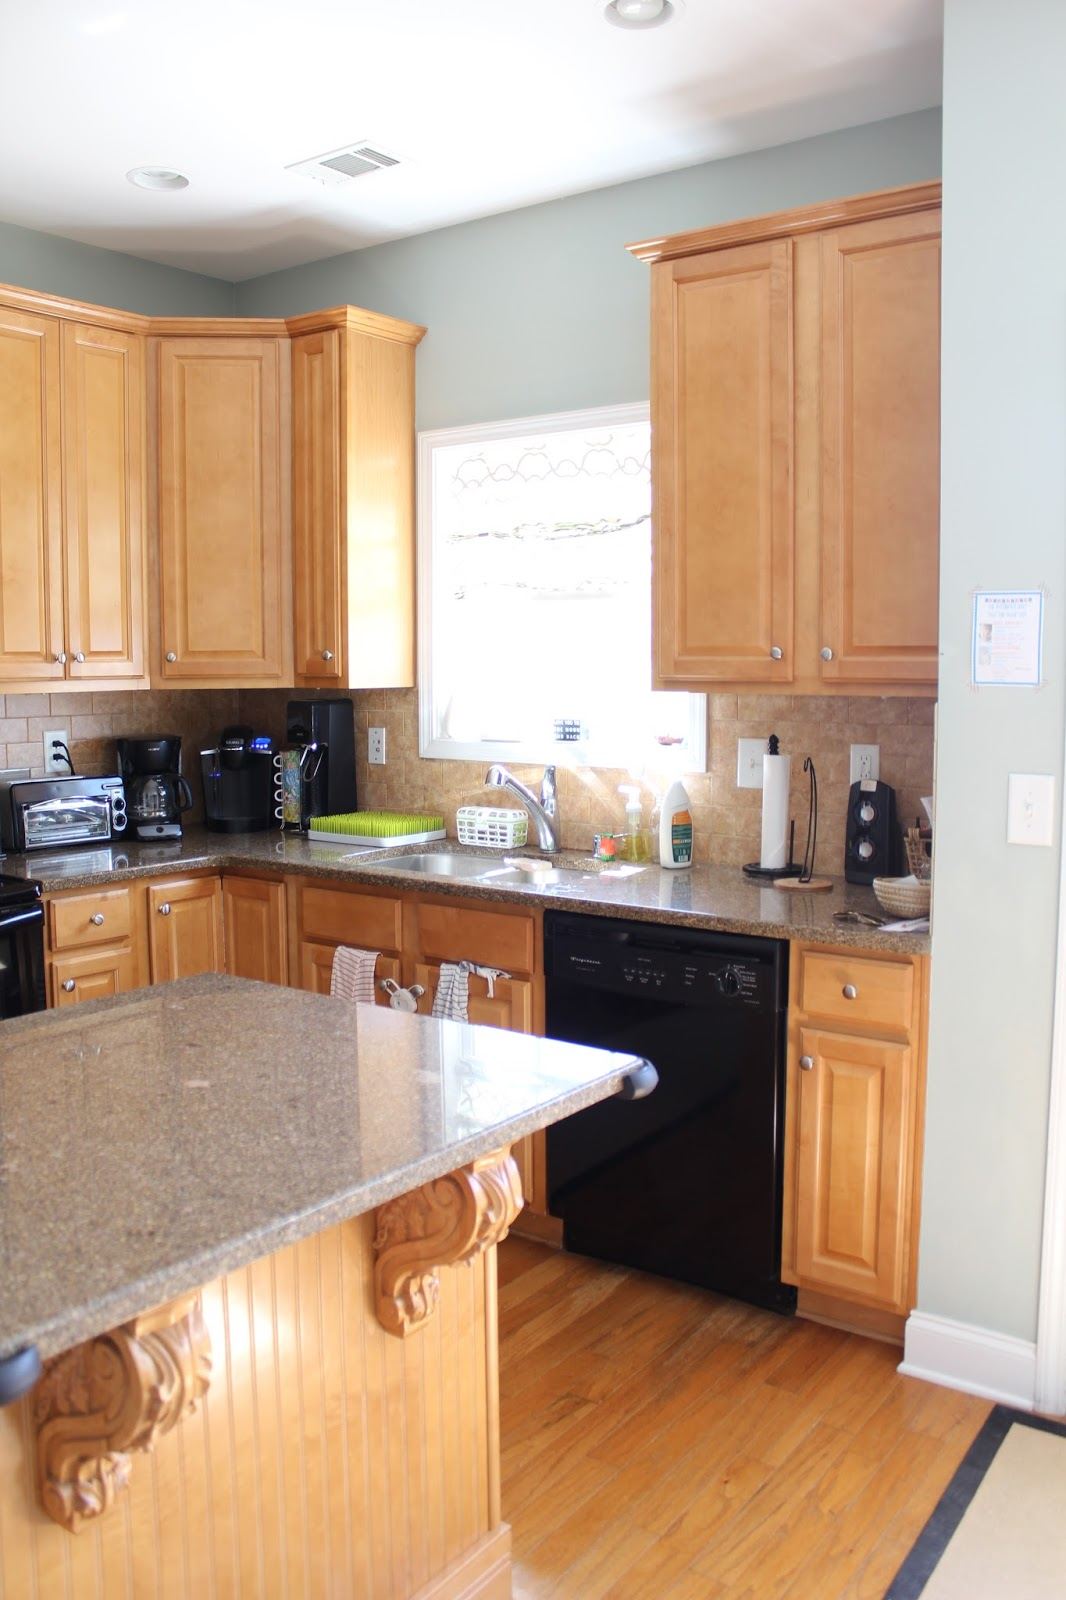 Update Kitchen Ten June How To Update A Rental Kitchen With Peel Stick Tile